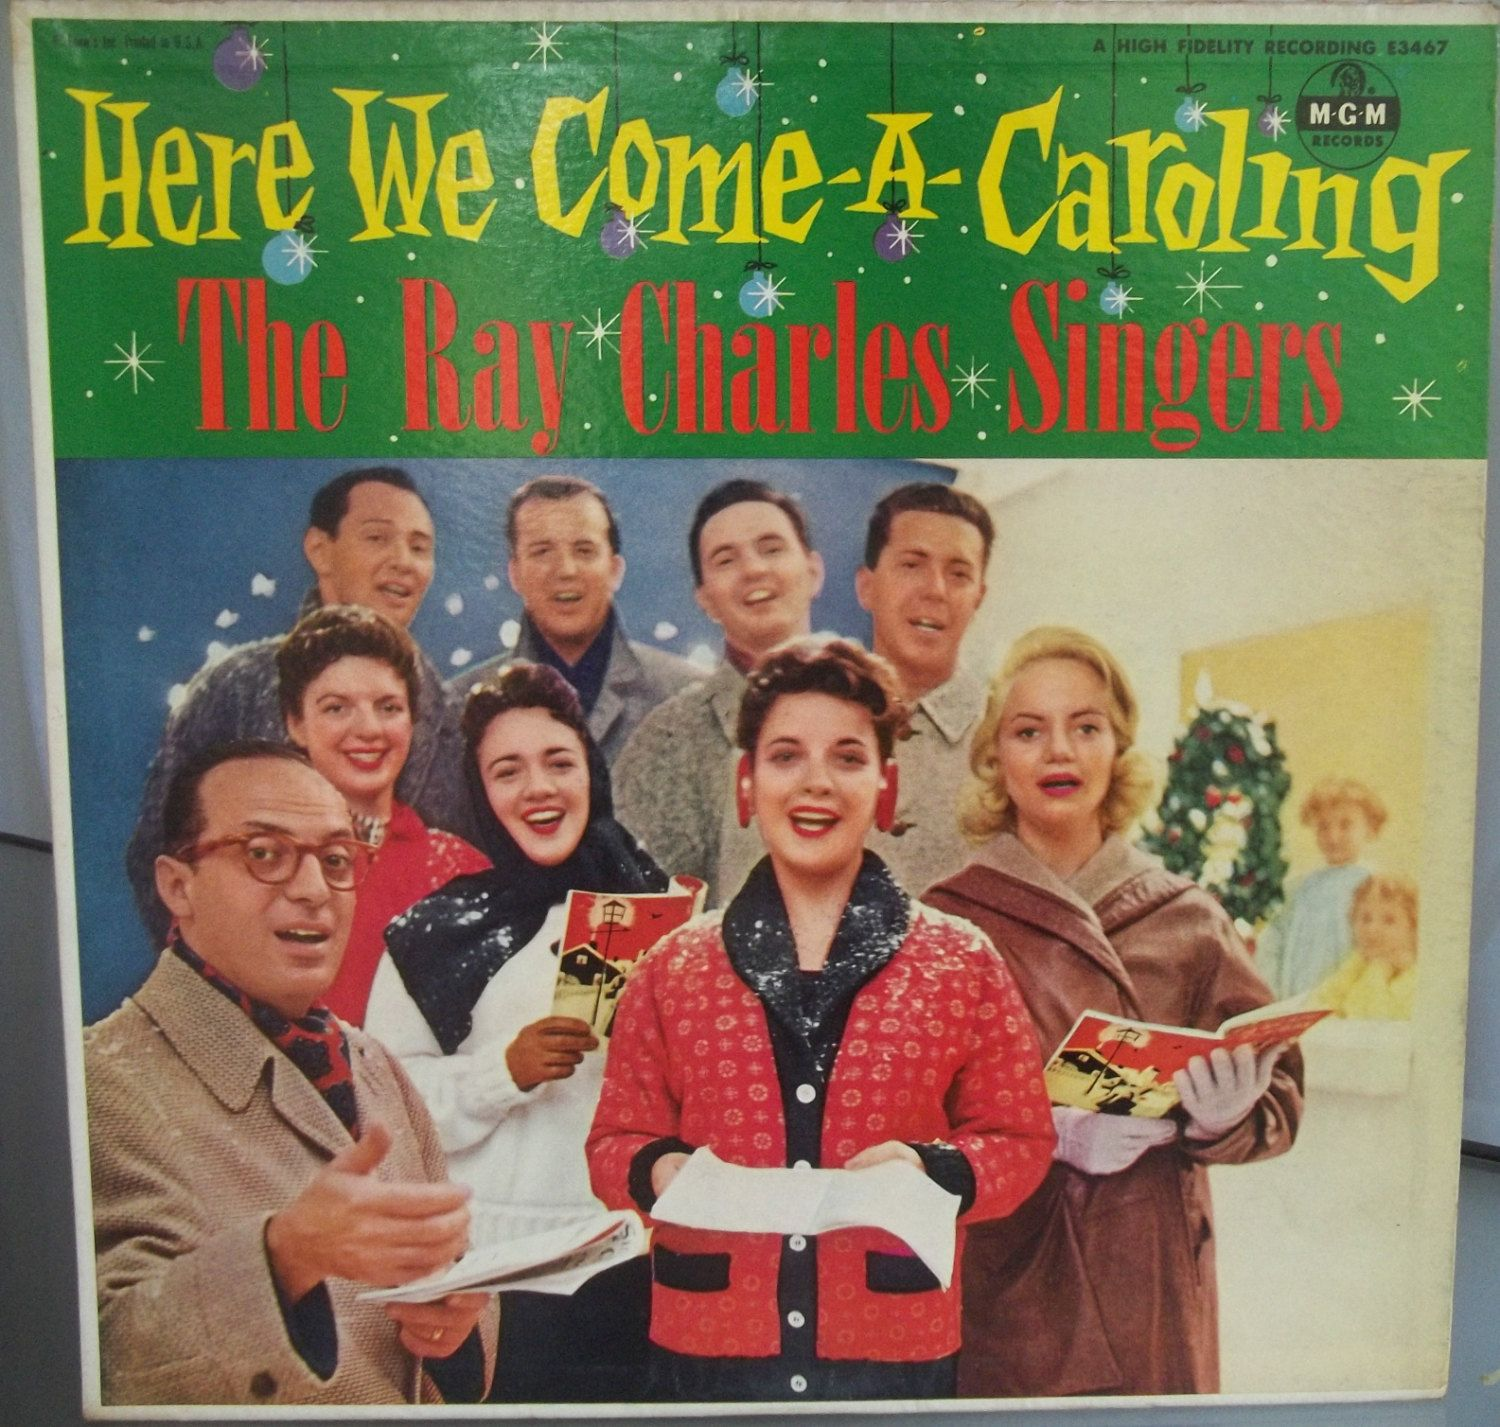 the ray charles singers here we come a caroling vintage record album vinyl lp